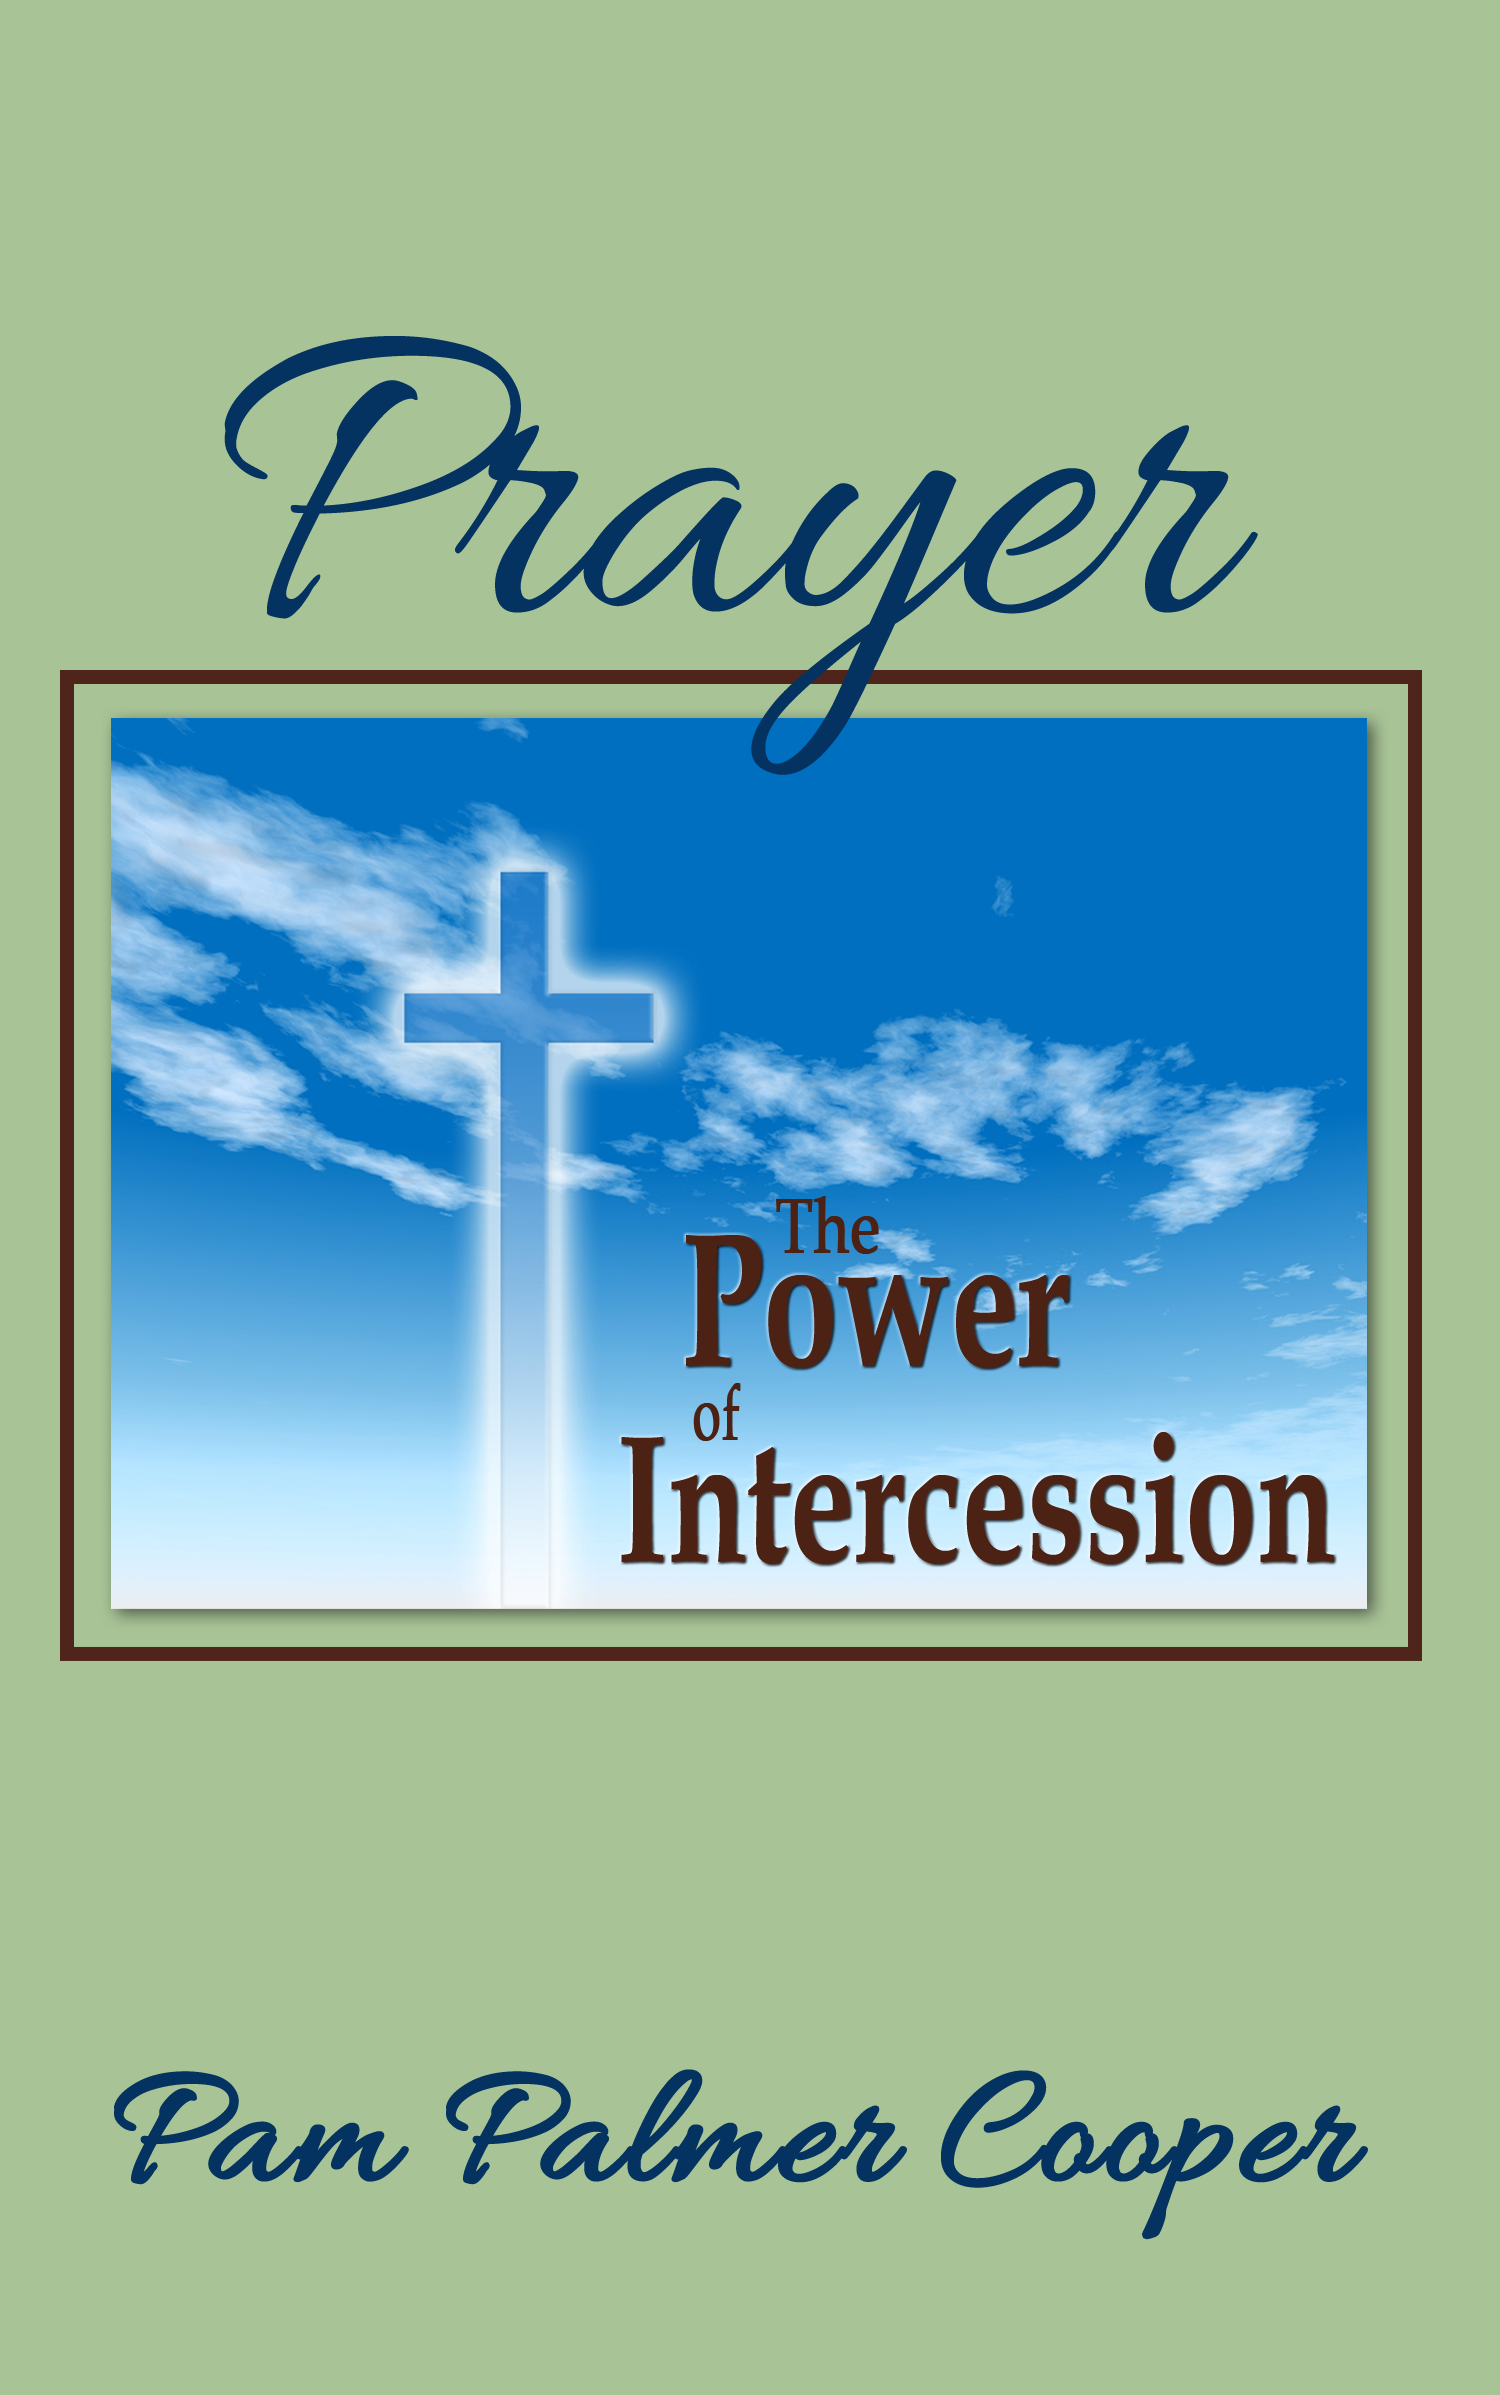 Prayer The Power of Intercession